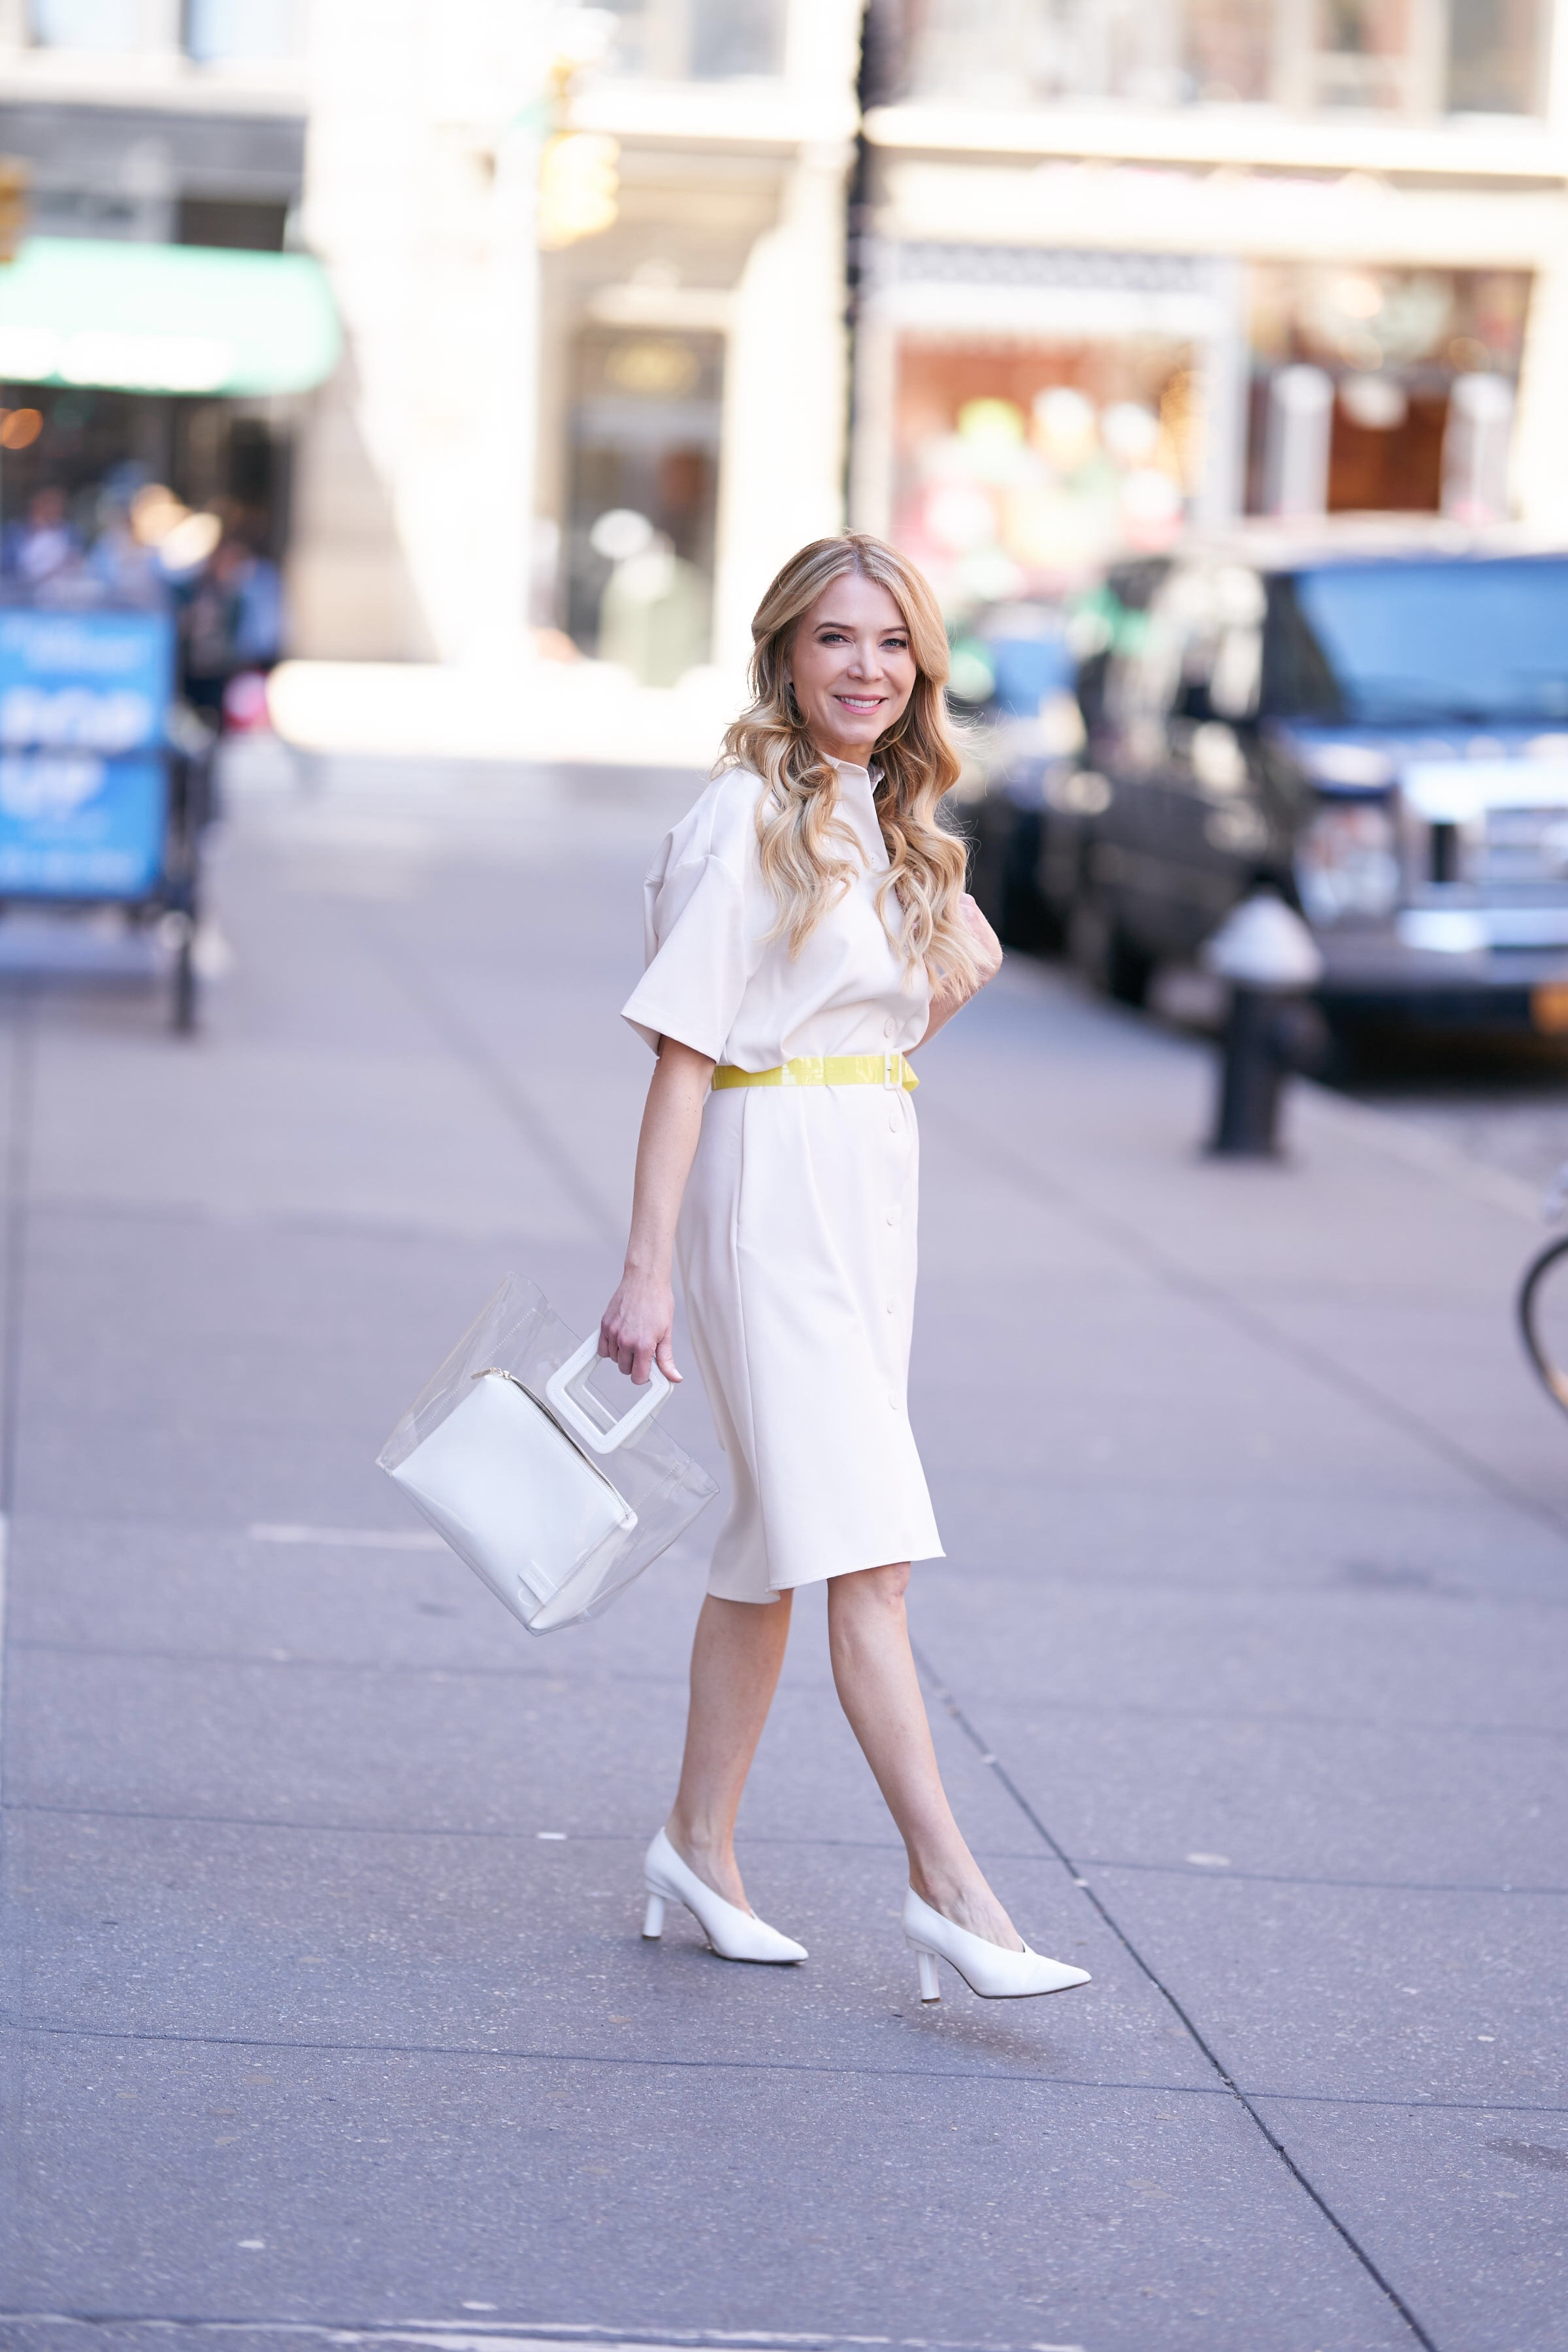 About the Outfits, Laura Bonner, neon trend, Target style, neutrals, white shoes, staud shirley bag